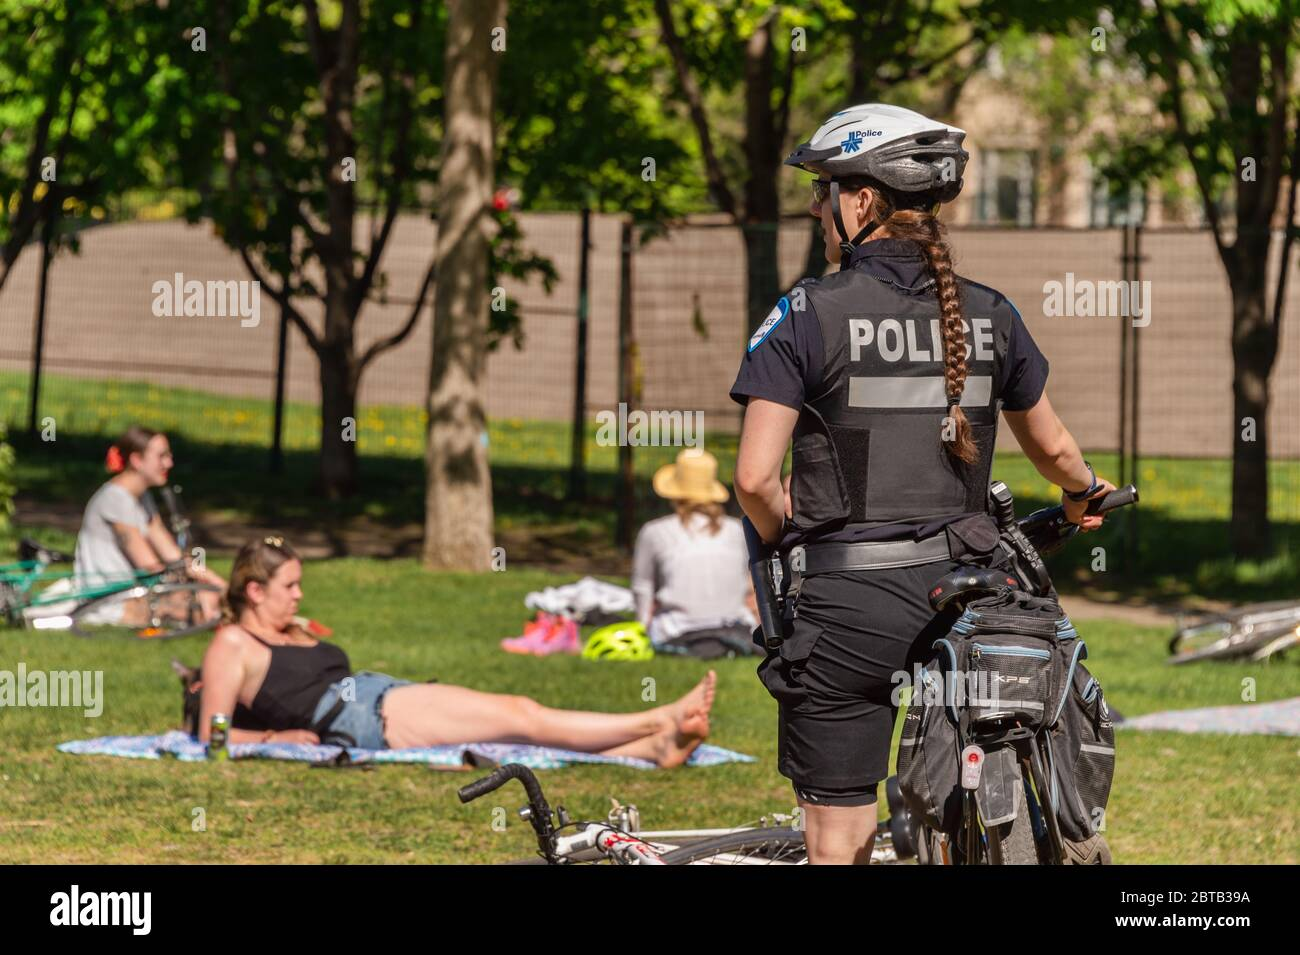 Montreal, Canada - 23 May 2020: Police patrol Laurier park to enforce the coronavirus physical-distancing laws Stock Photo